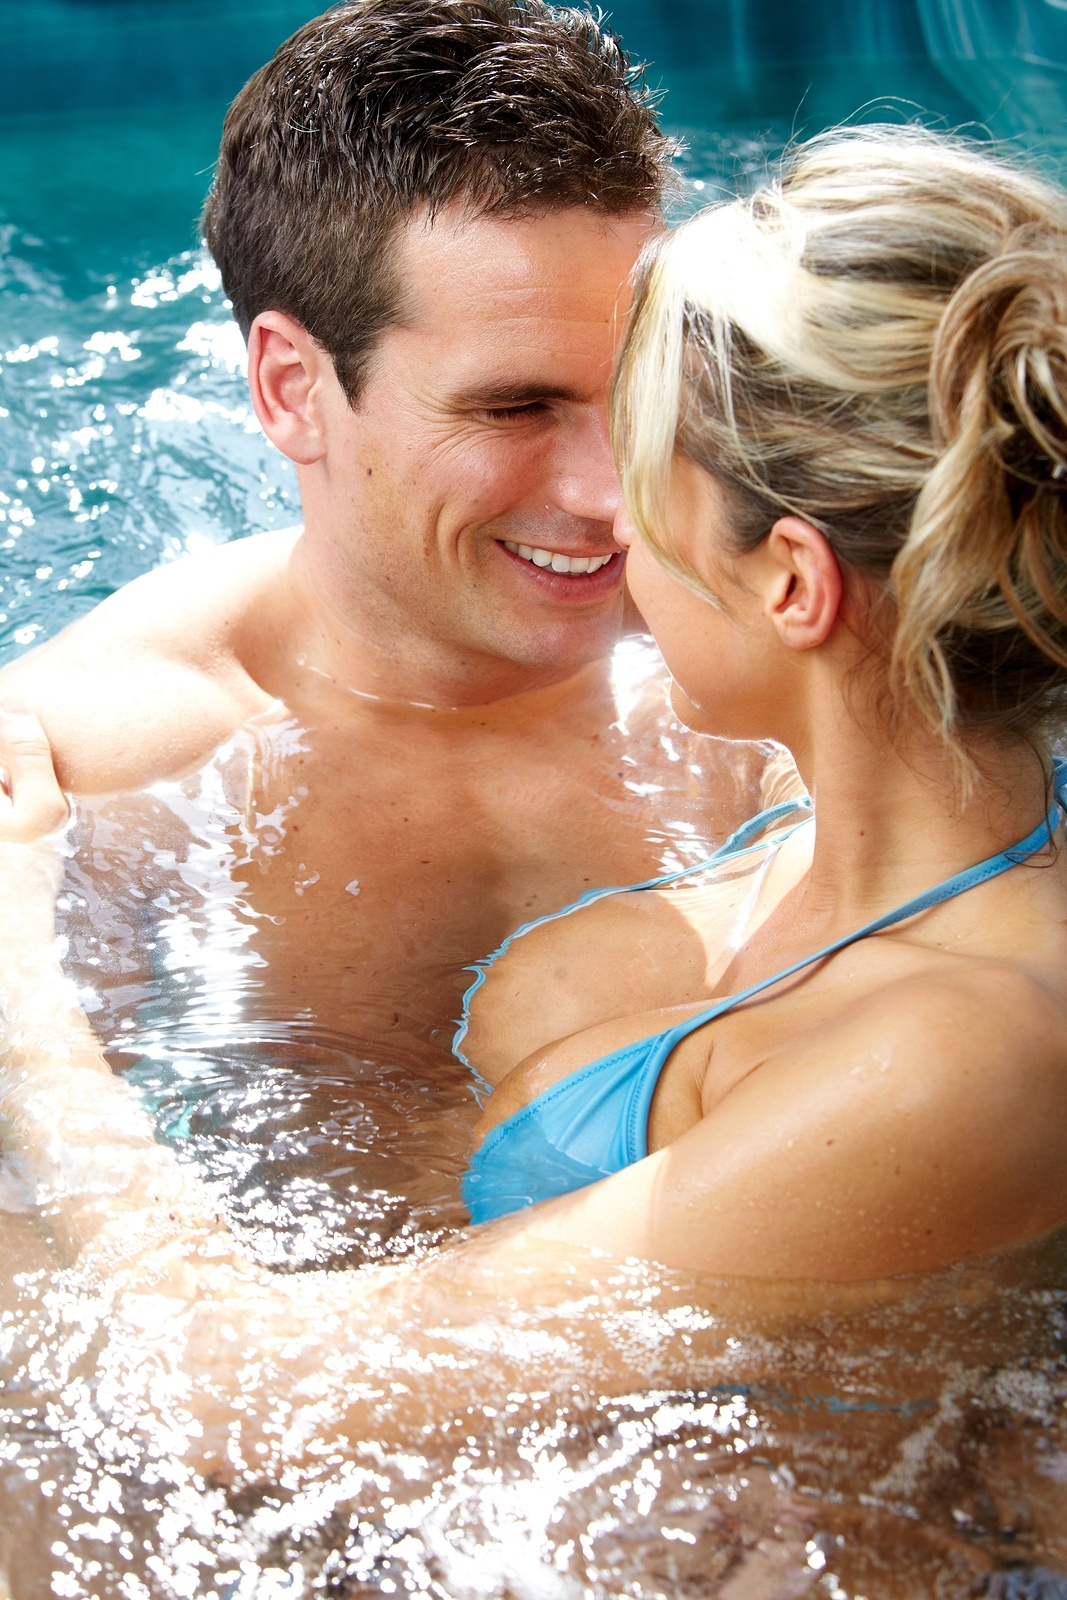 bigstock-Young-couple-relaxing-in-hot-t-88606304.jpg